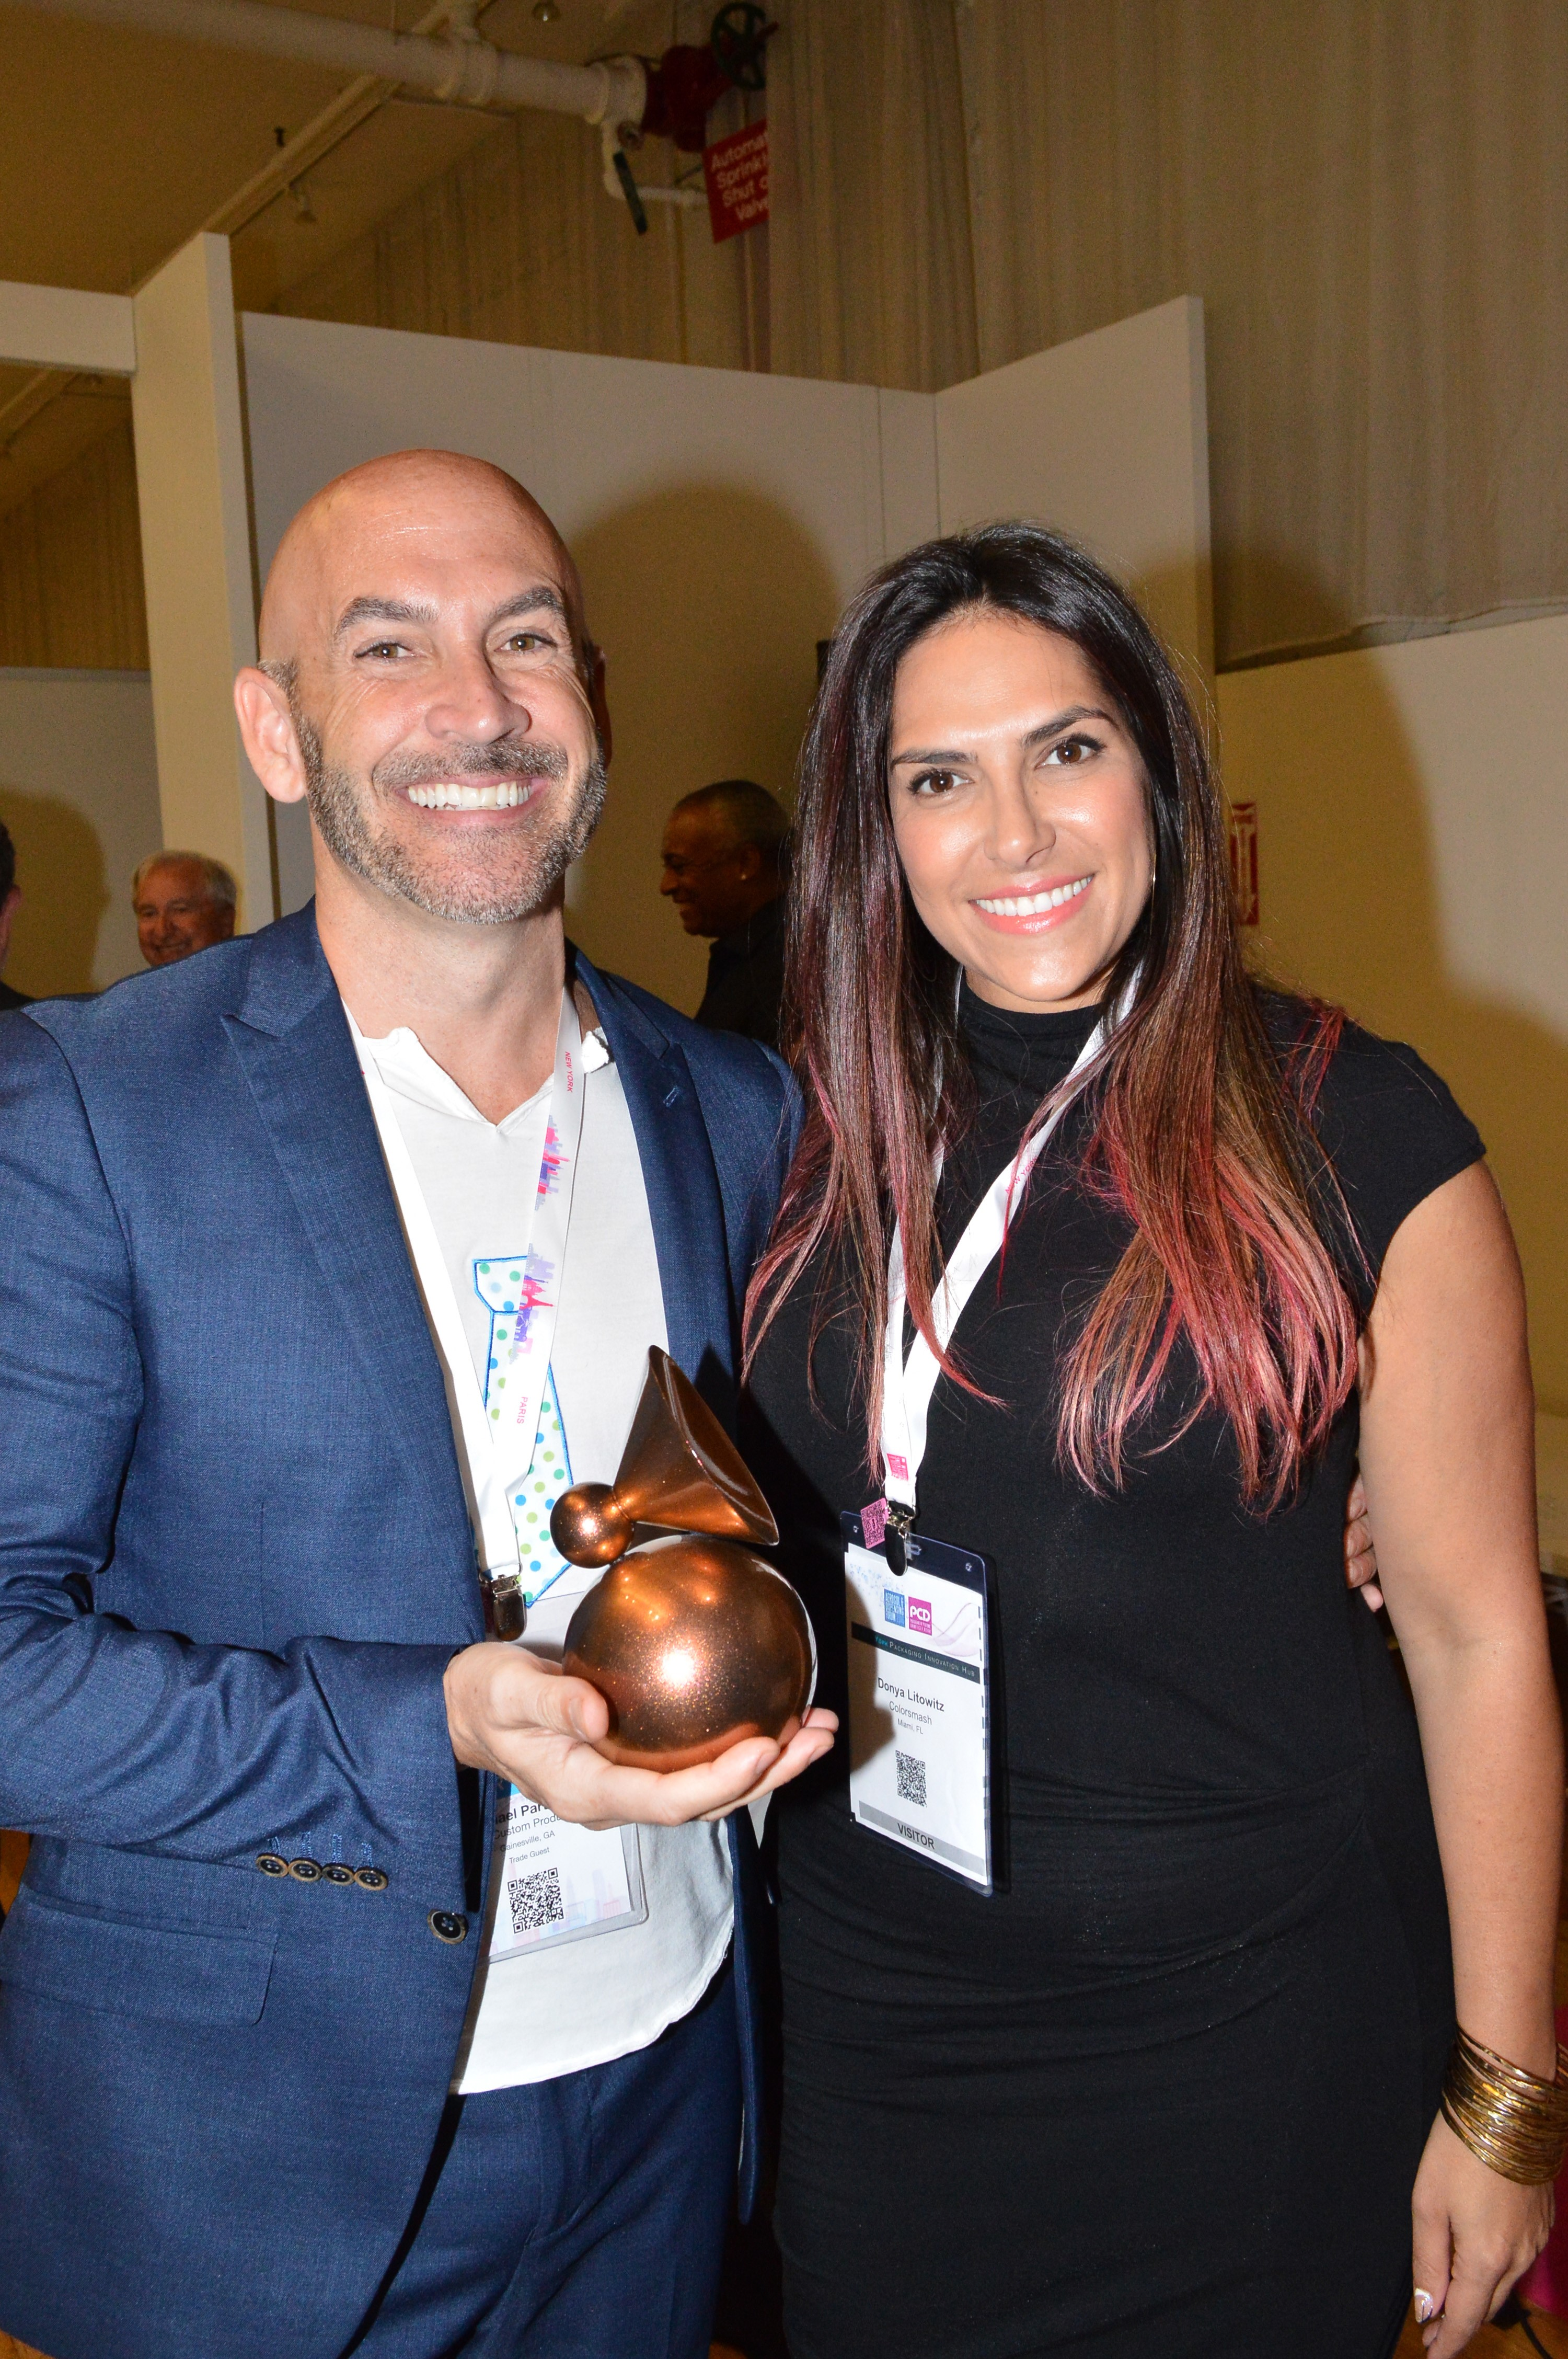 Michael Partridge, executive partner of Healthy Dyeit, and Donya Litowitz, CEO, celebrate Colorsmash's win of the first US ADF&PCD New York Packaging Innovation Award for hair care/haircolor.